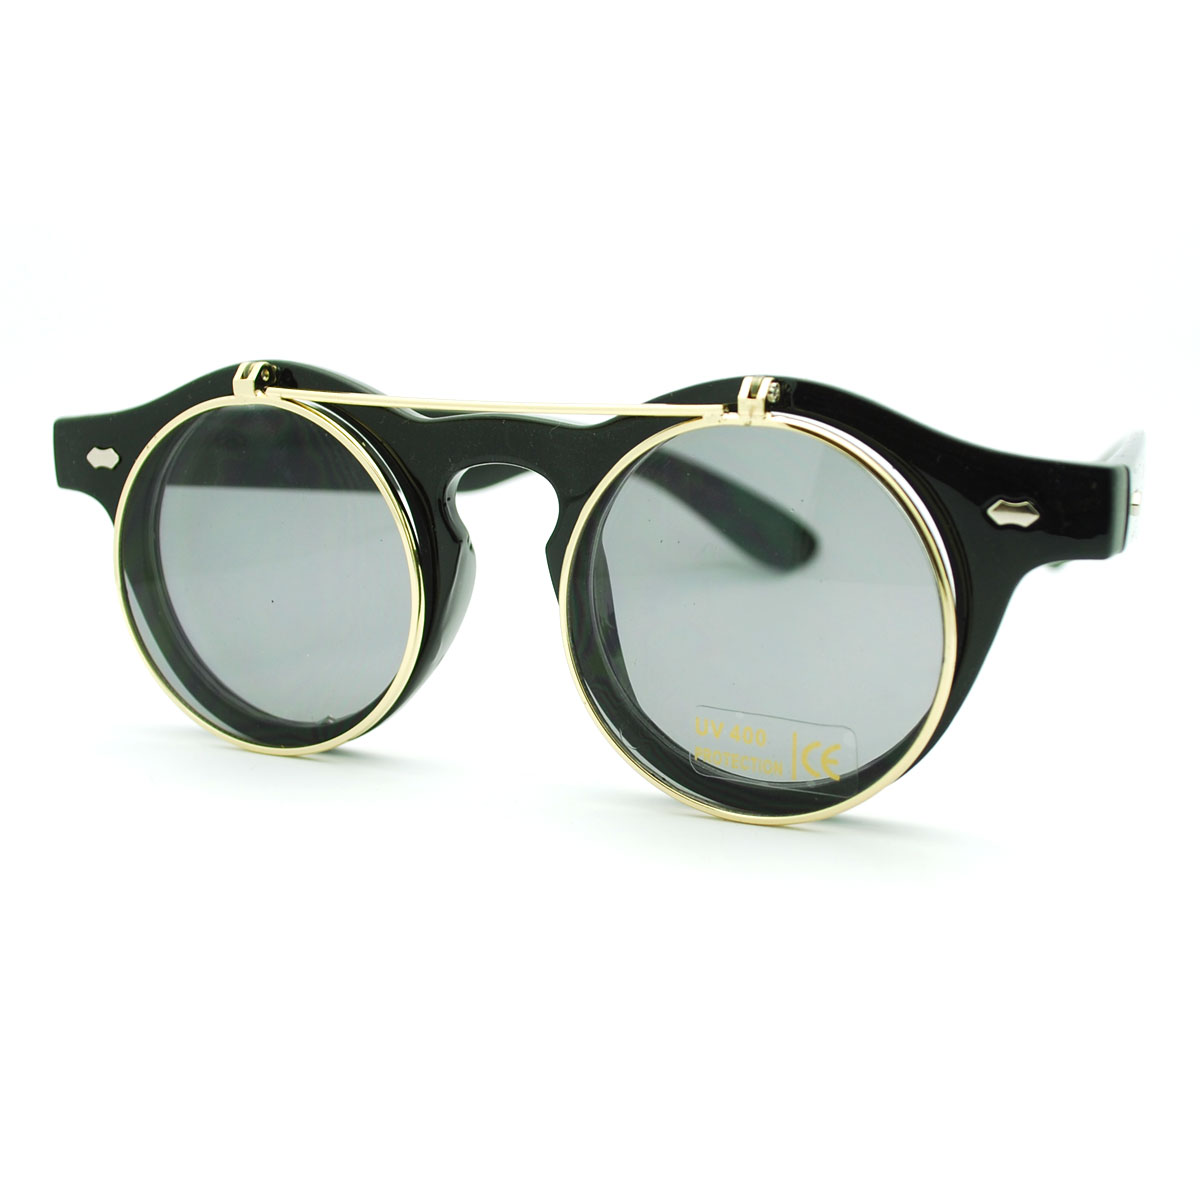 Trendy high fashion chic flip up perfect circle round sunglasses